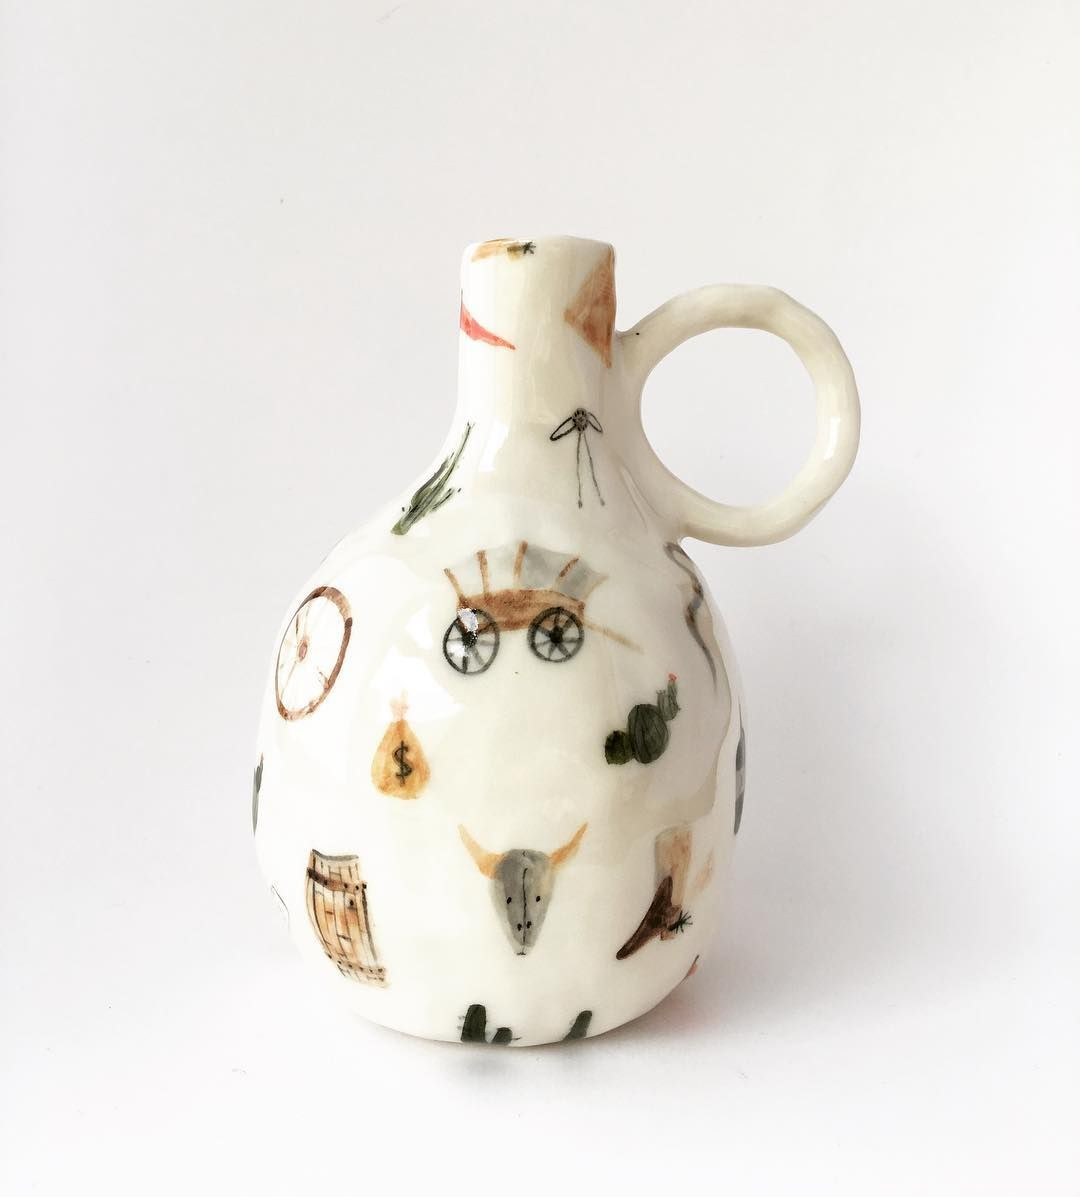 moroccan ceramic vase of vivien mildenberger ceramica pinterest pottery illustrations intended for vivien mildenberger